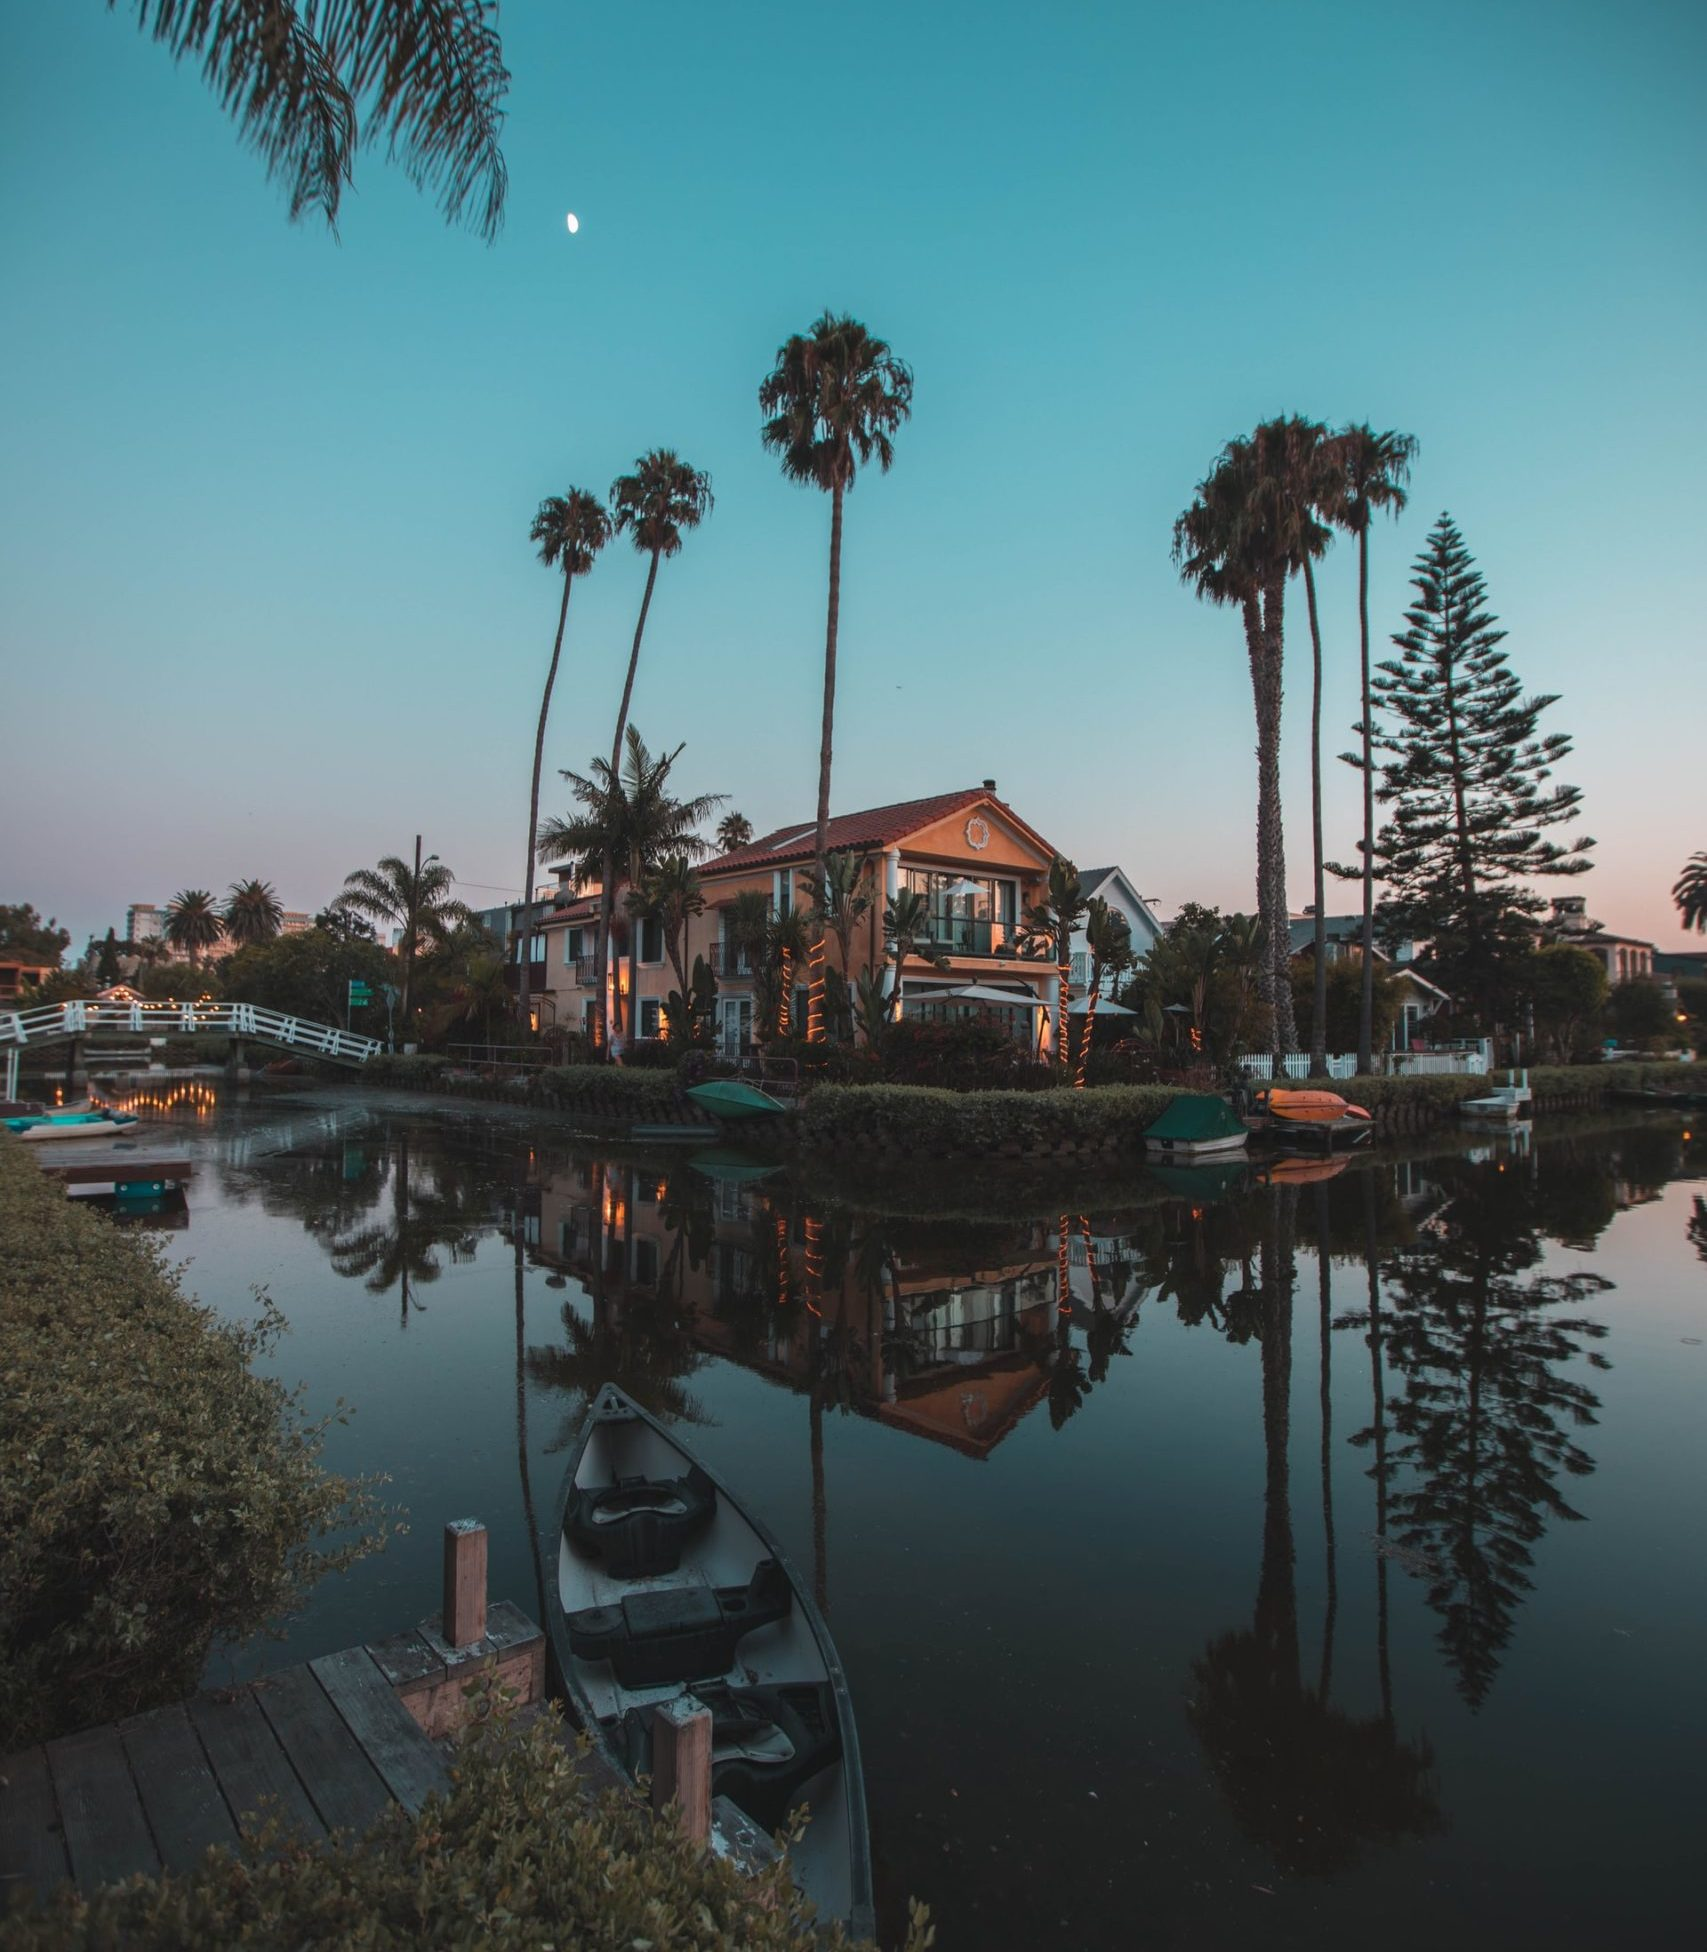 Venice beach canals at night